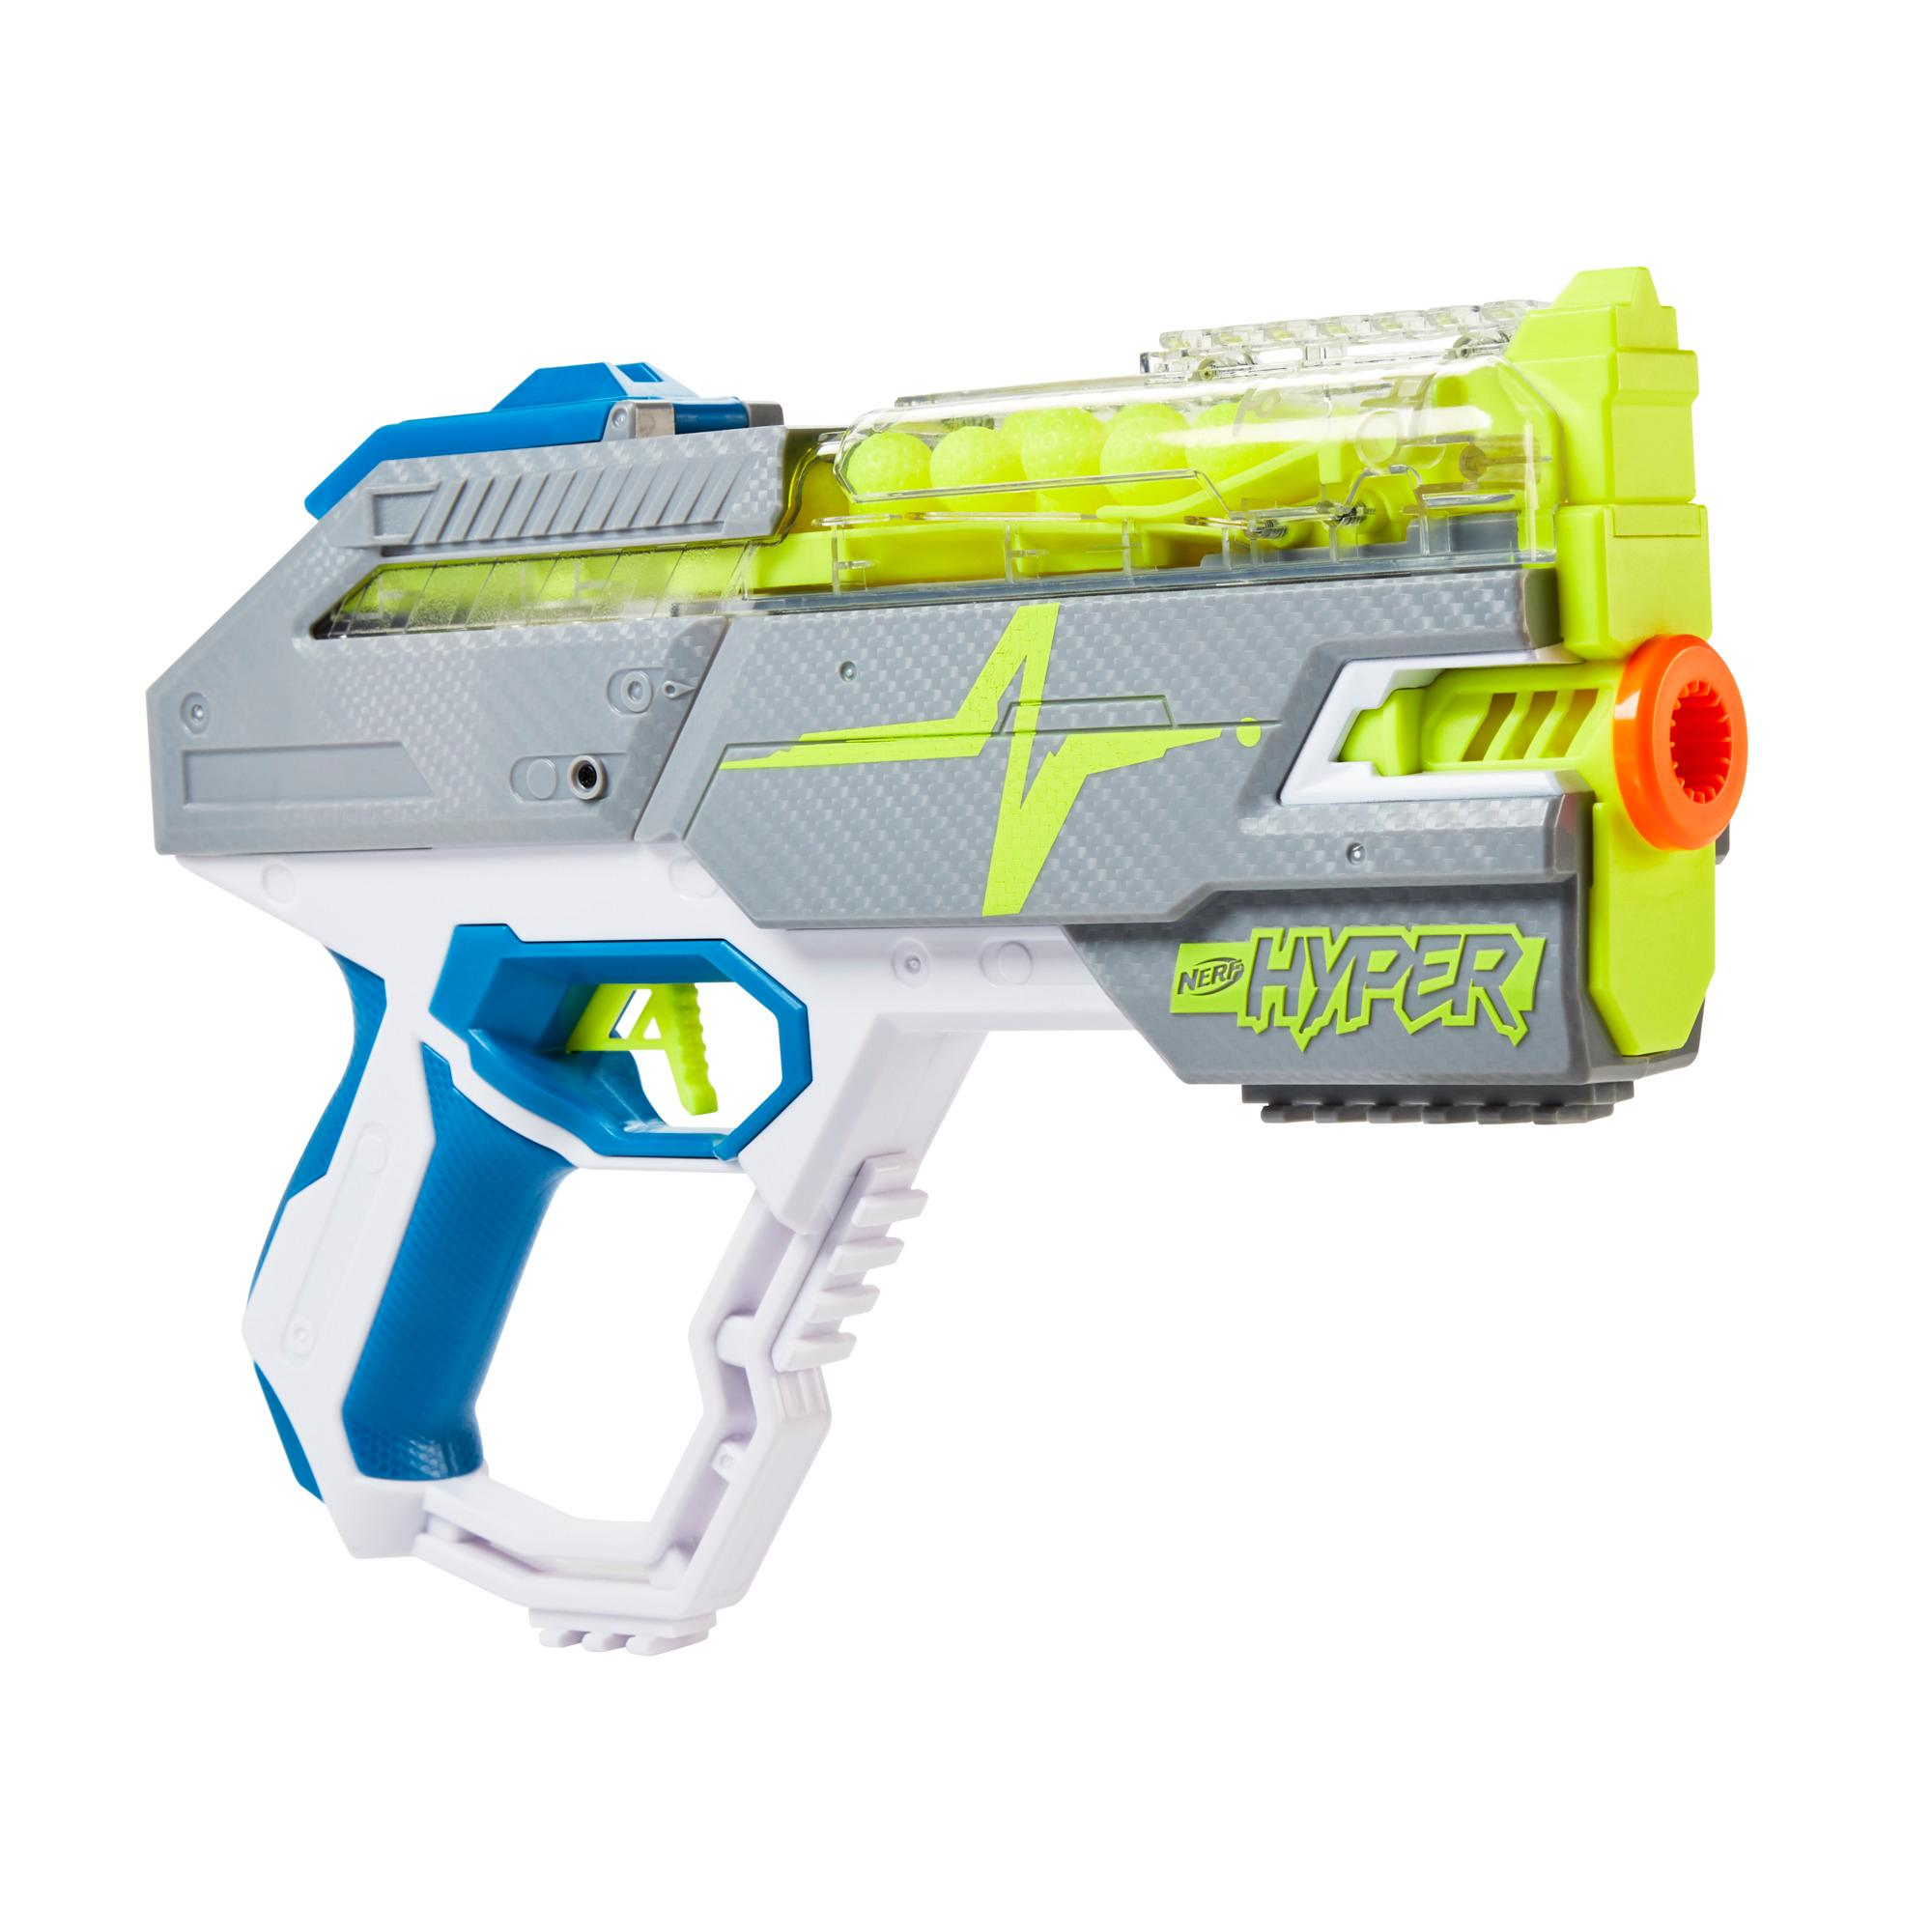 Nerf Hyper Rush-40 Pump-Action Blaster and 30 Nerf Hyper Rounds, 110 FPS Velocity, Easy Reload, 40-Round Capacity